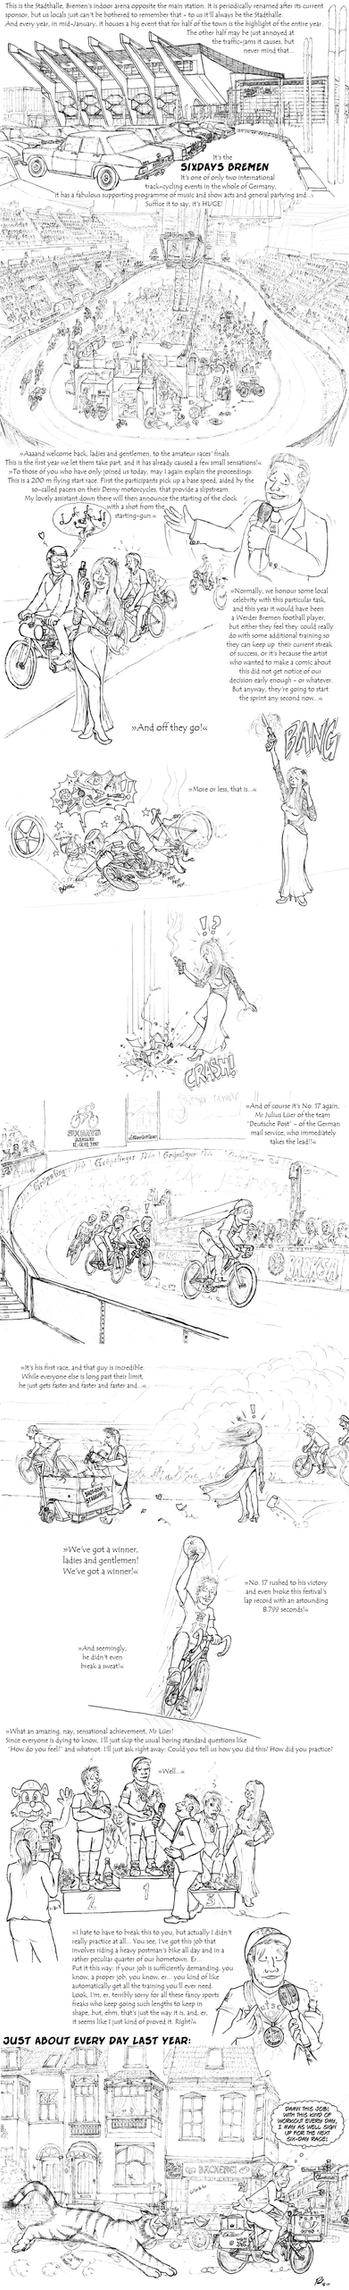 Master the Tiger: Bicycle Race by PaulEberhardt